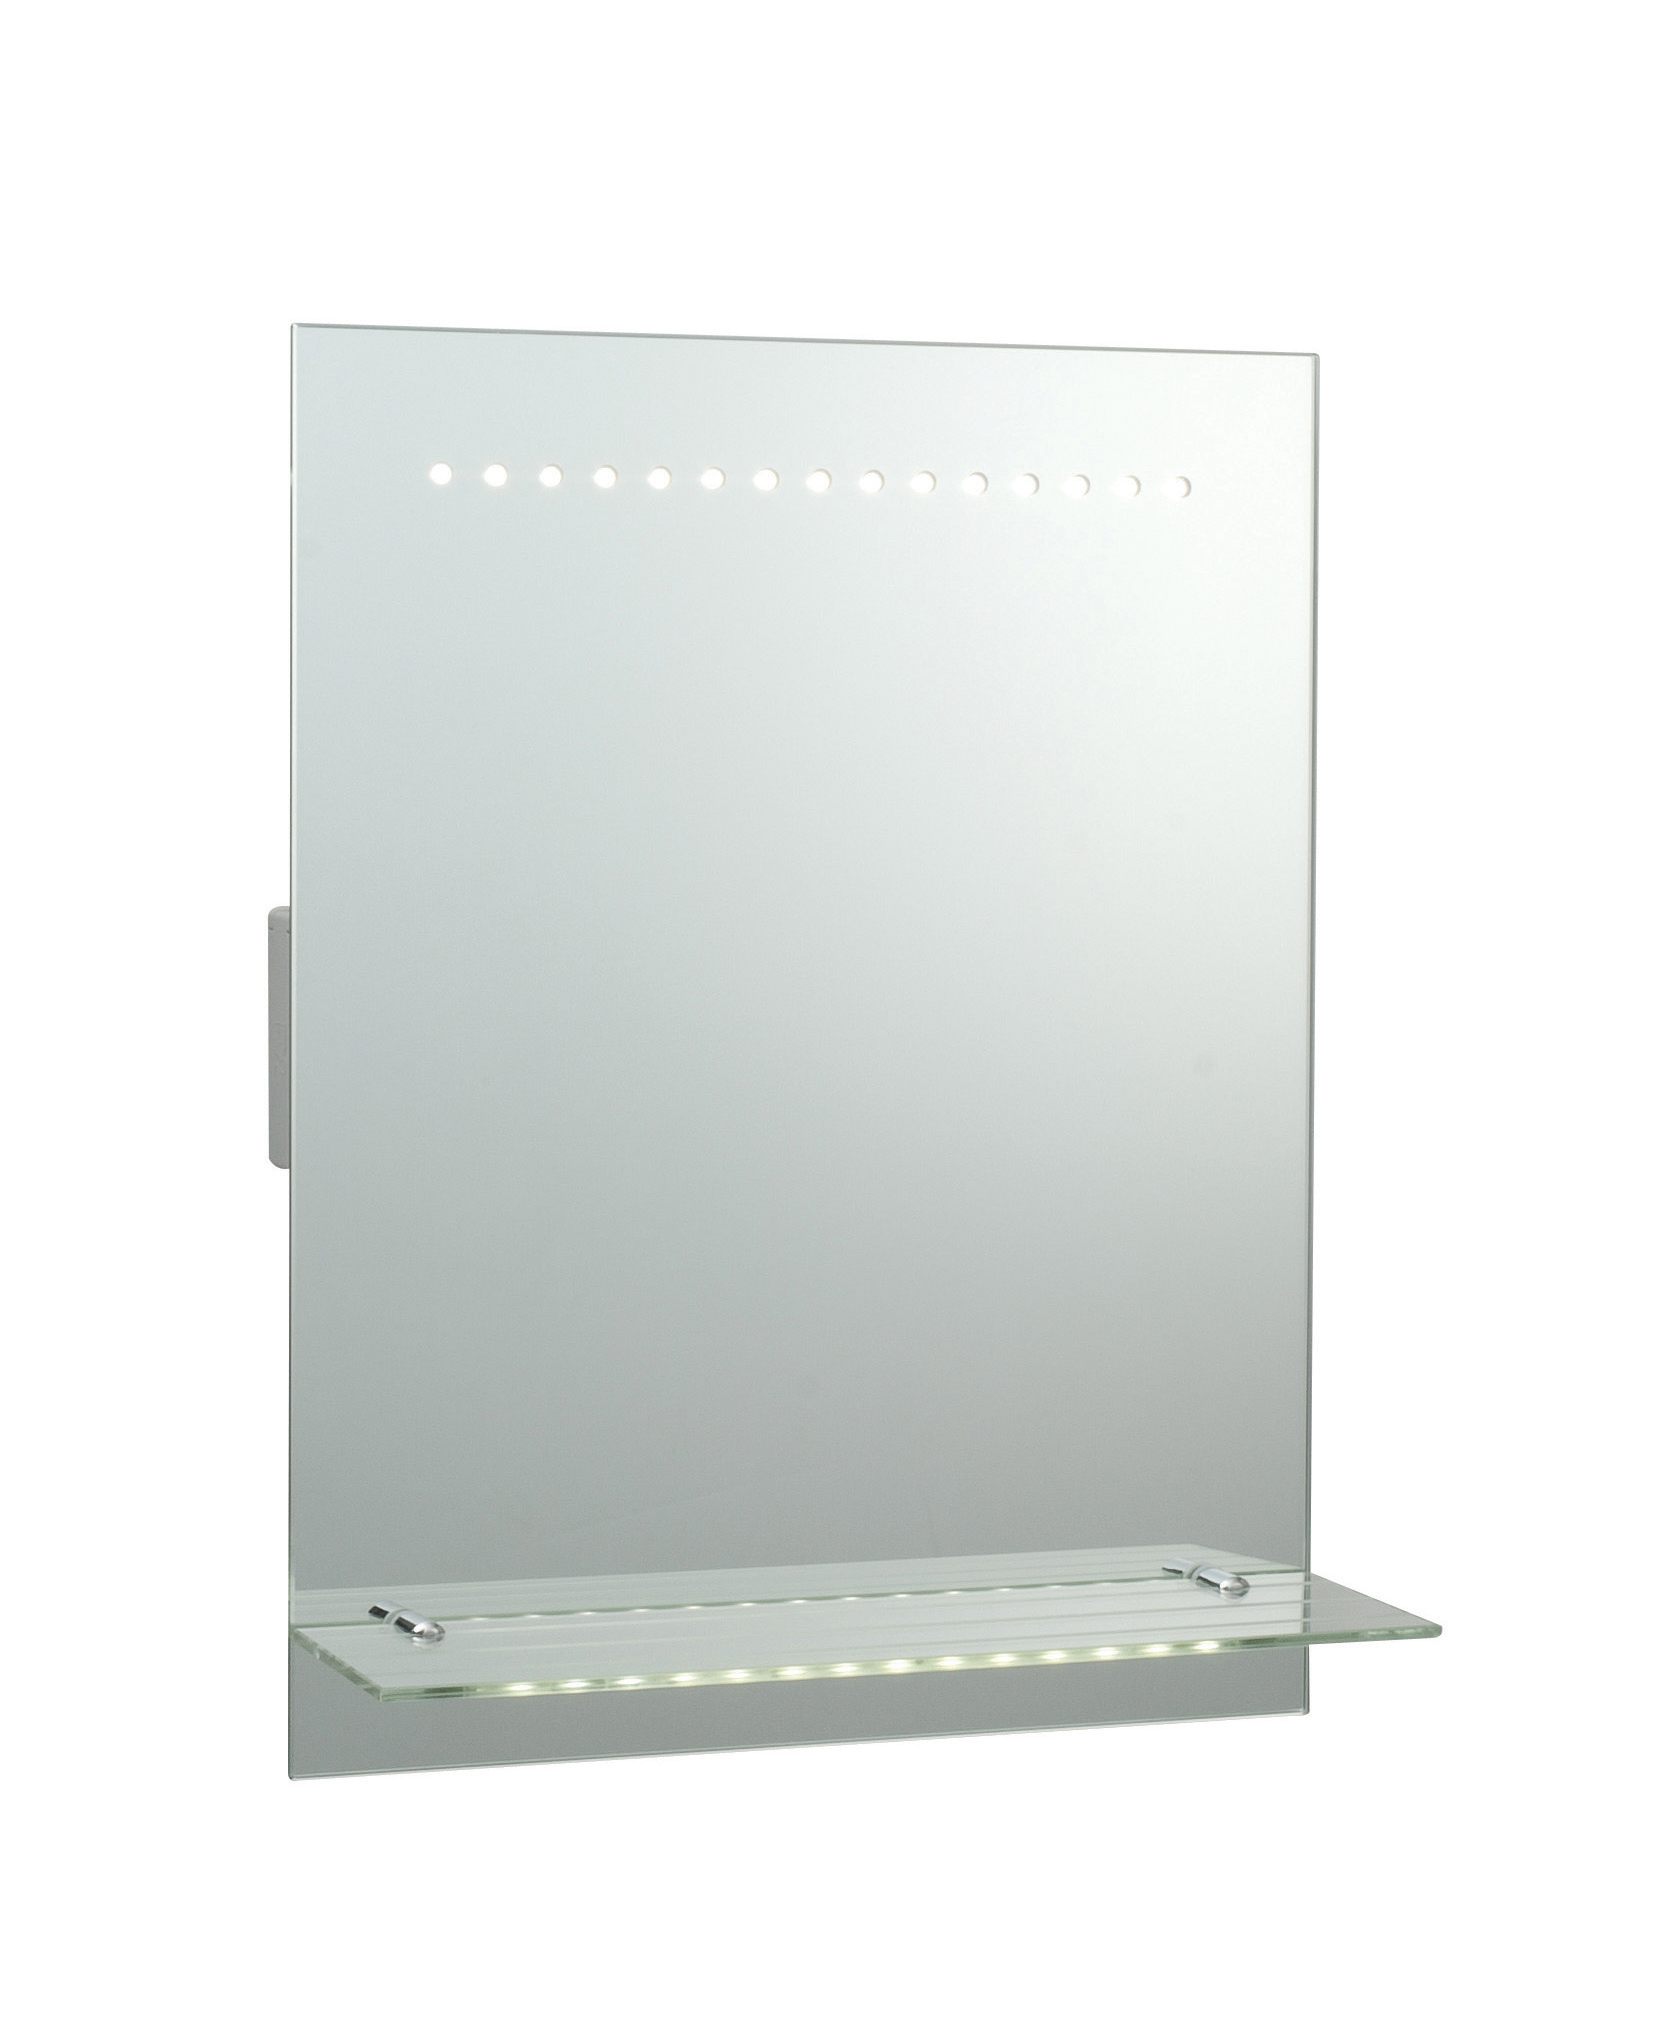 Saxby Omega 39237 Illuminated LED Mirror Glass Shelf Hand Sensor Shaver Demis